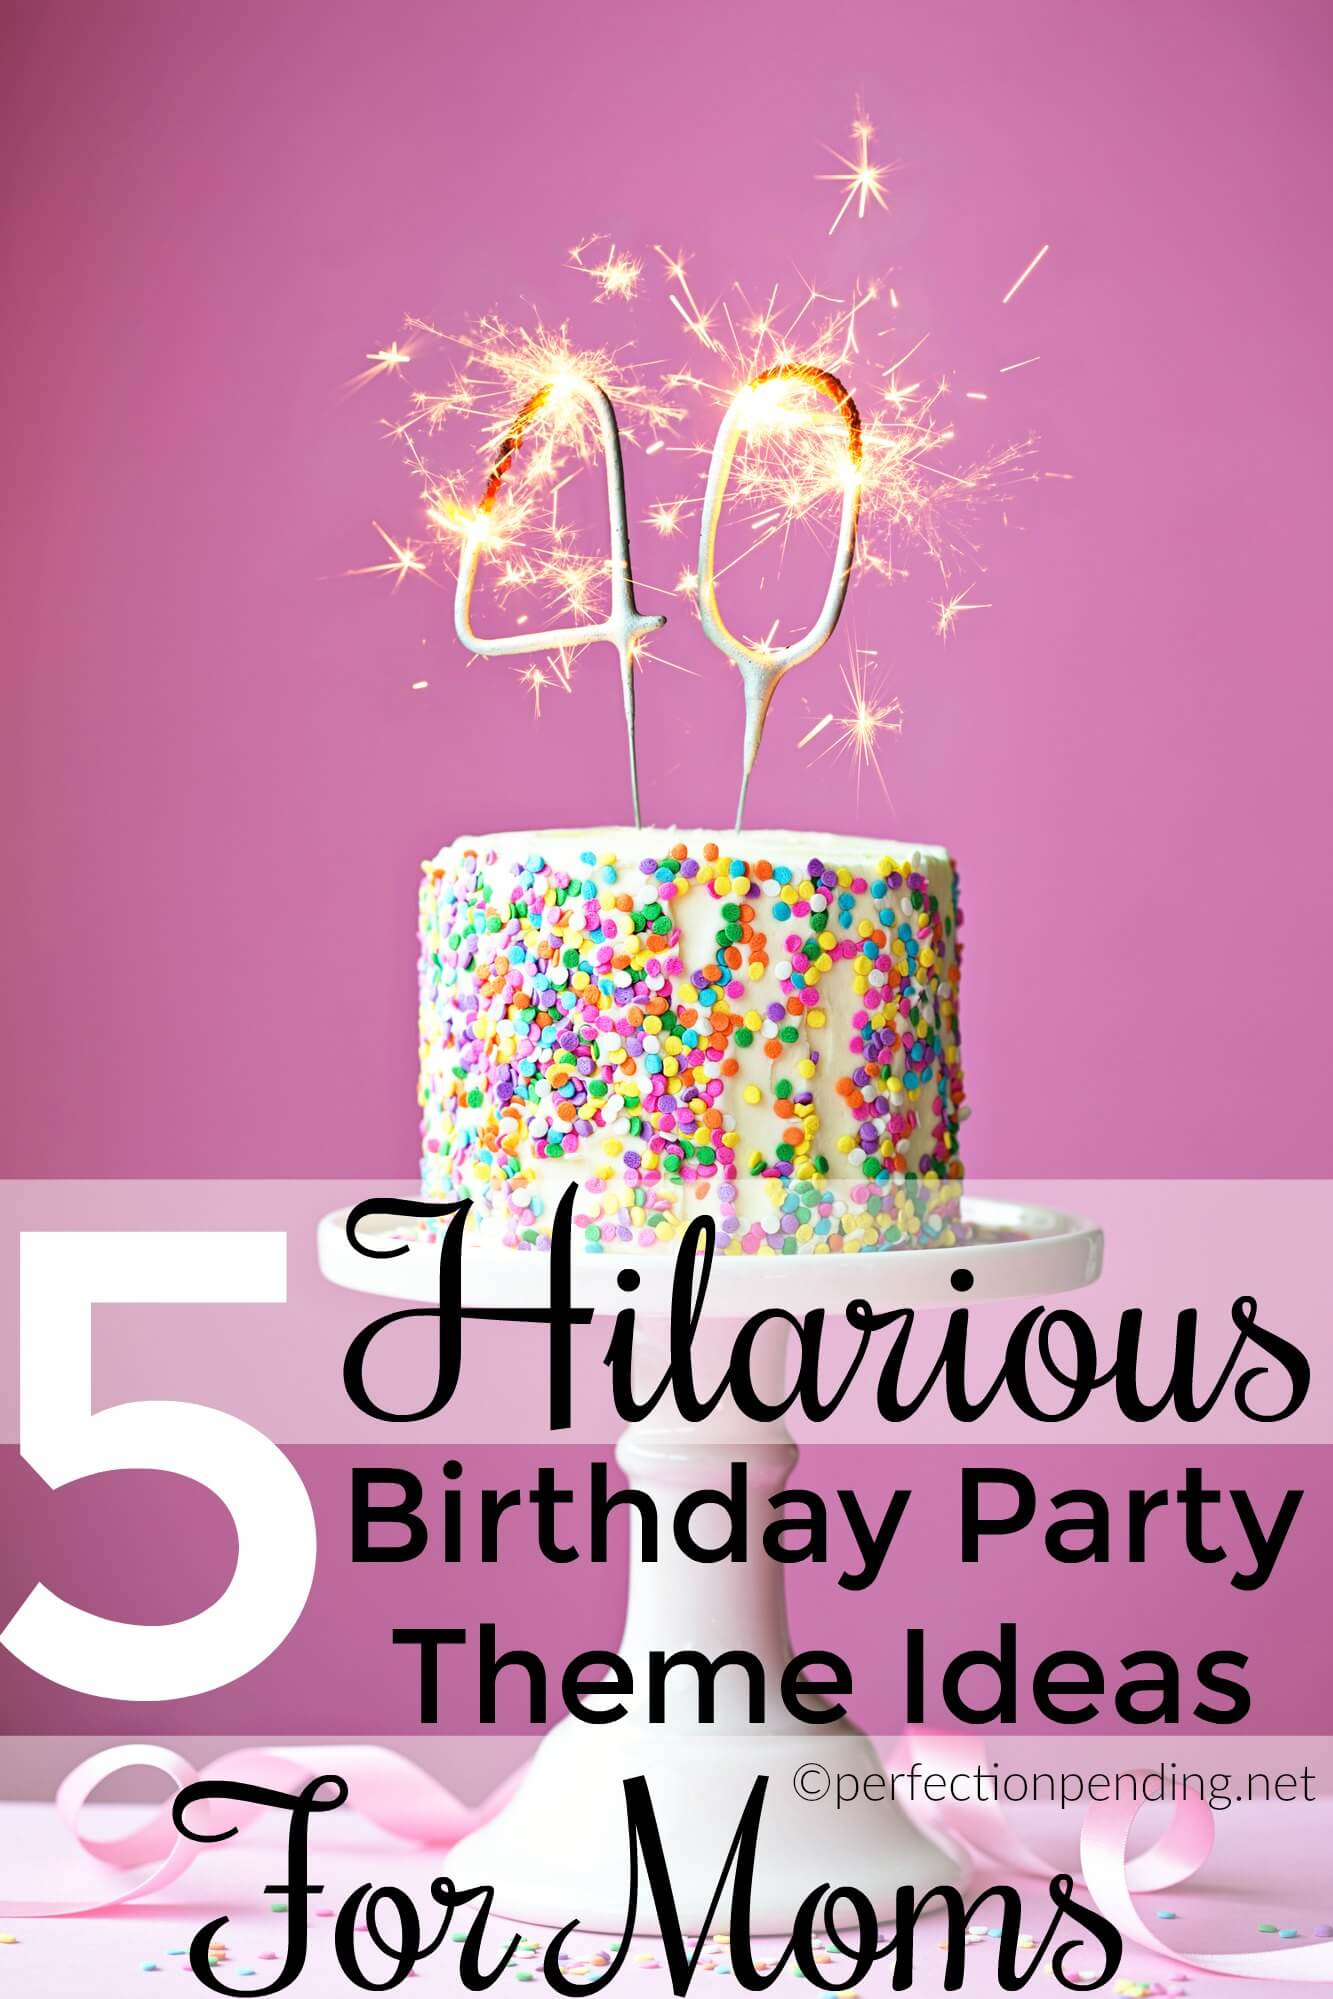 Every mom wants a theme for her birthday party just like our elaborate themed birthday party ideas we come up for our kids. This funny list of themed birthday party ideas for moms will make you want to throw a birthday party for yourself. Even if it is just taking a nap. #birthdayparties #partyideas #birthday #momlife #motherhood #parenting #humor #funnyparenting